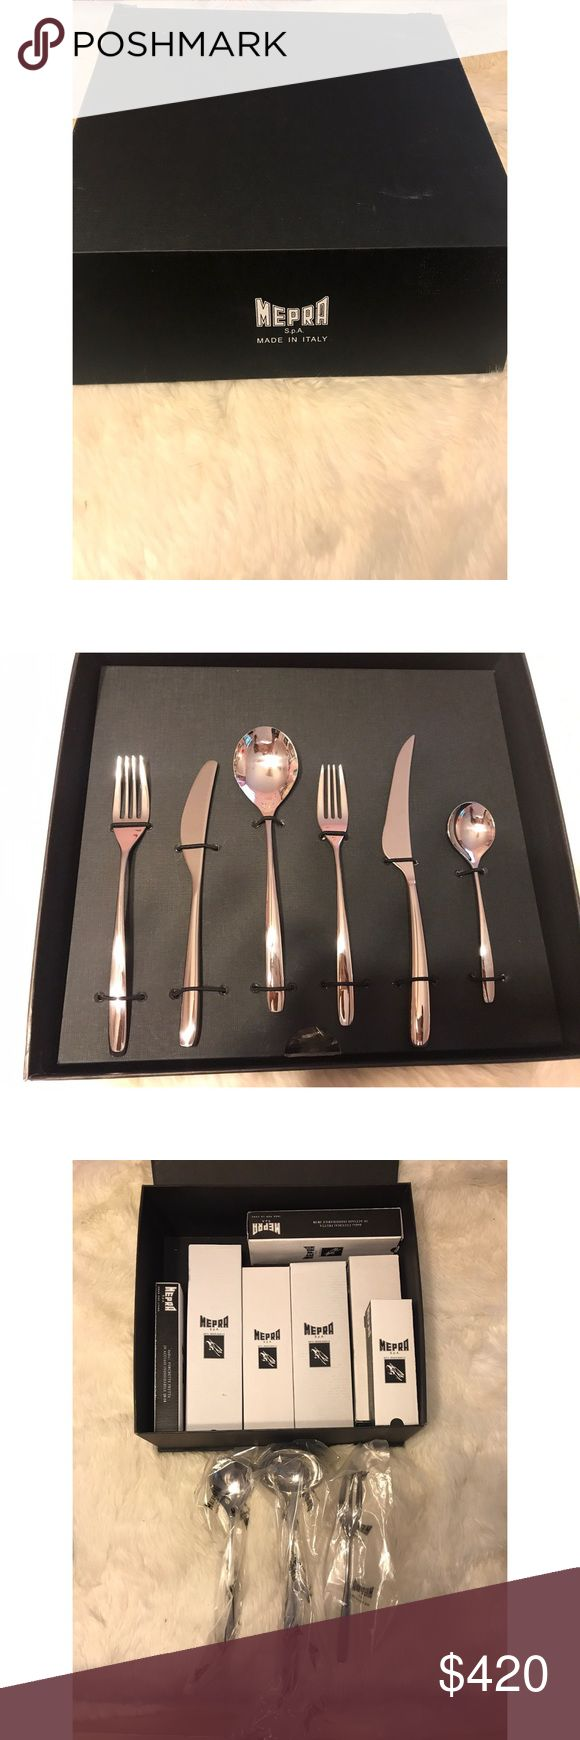 Selling this Mepra Unika Special Cutlery Set (87 PC) on Poshmark! My username is: bribri0125. #shopmycloset #poshmark #fashion #shopping #style #forsale #Mepra #Other